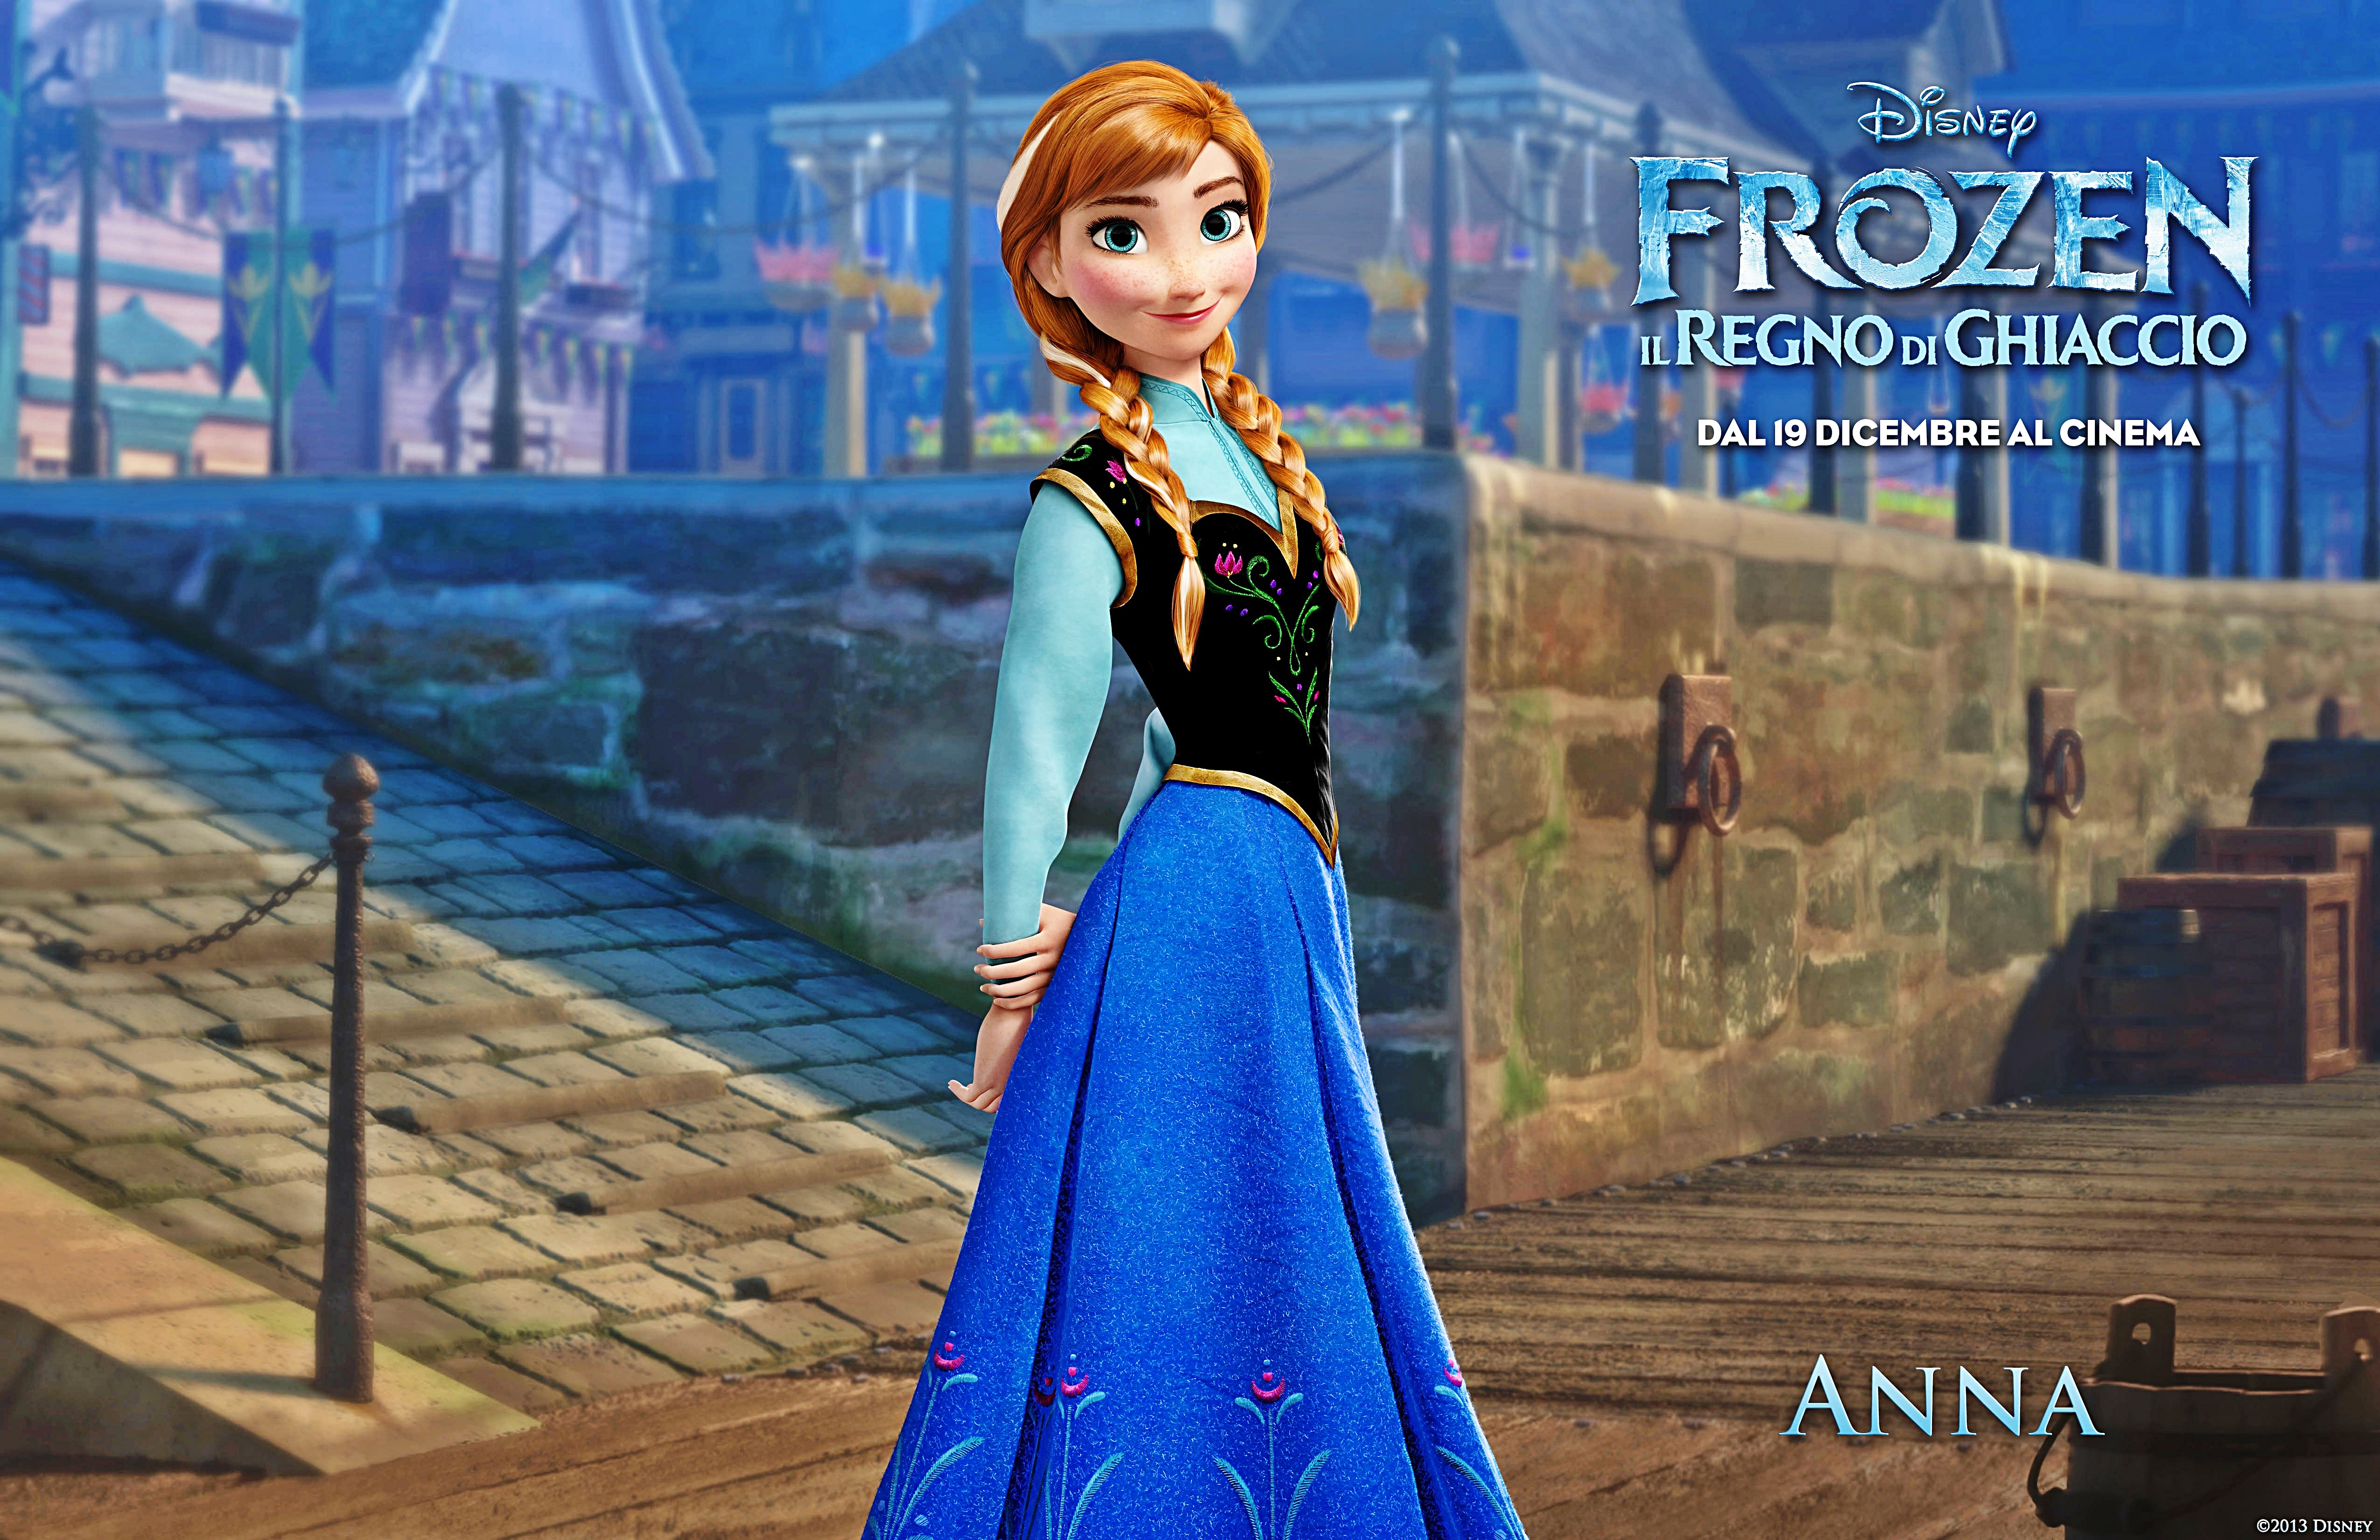 3d characters on pinterest 3d character the incredibles and monster university - Frozen anna disney ...